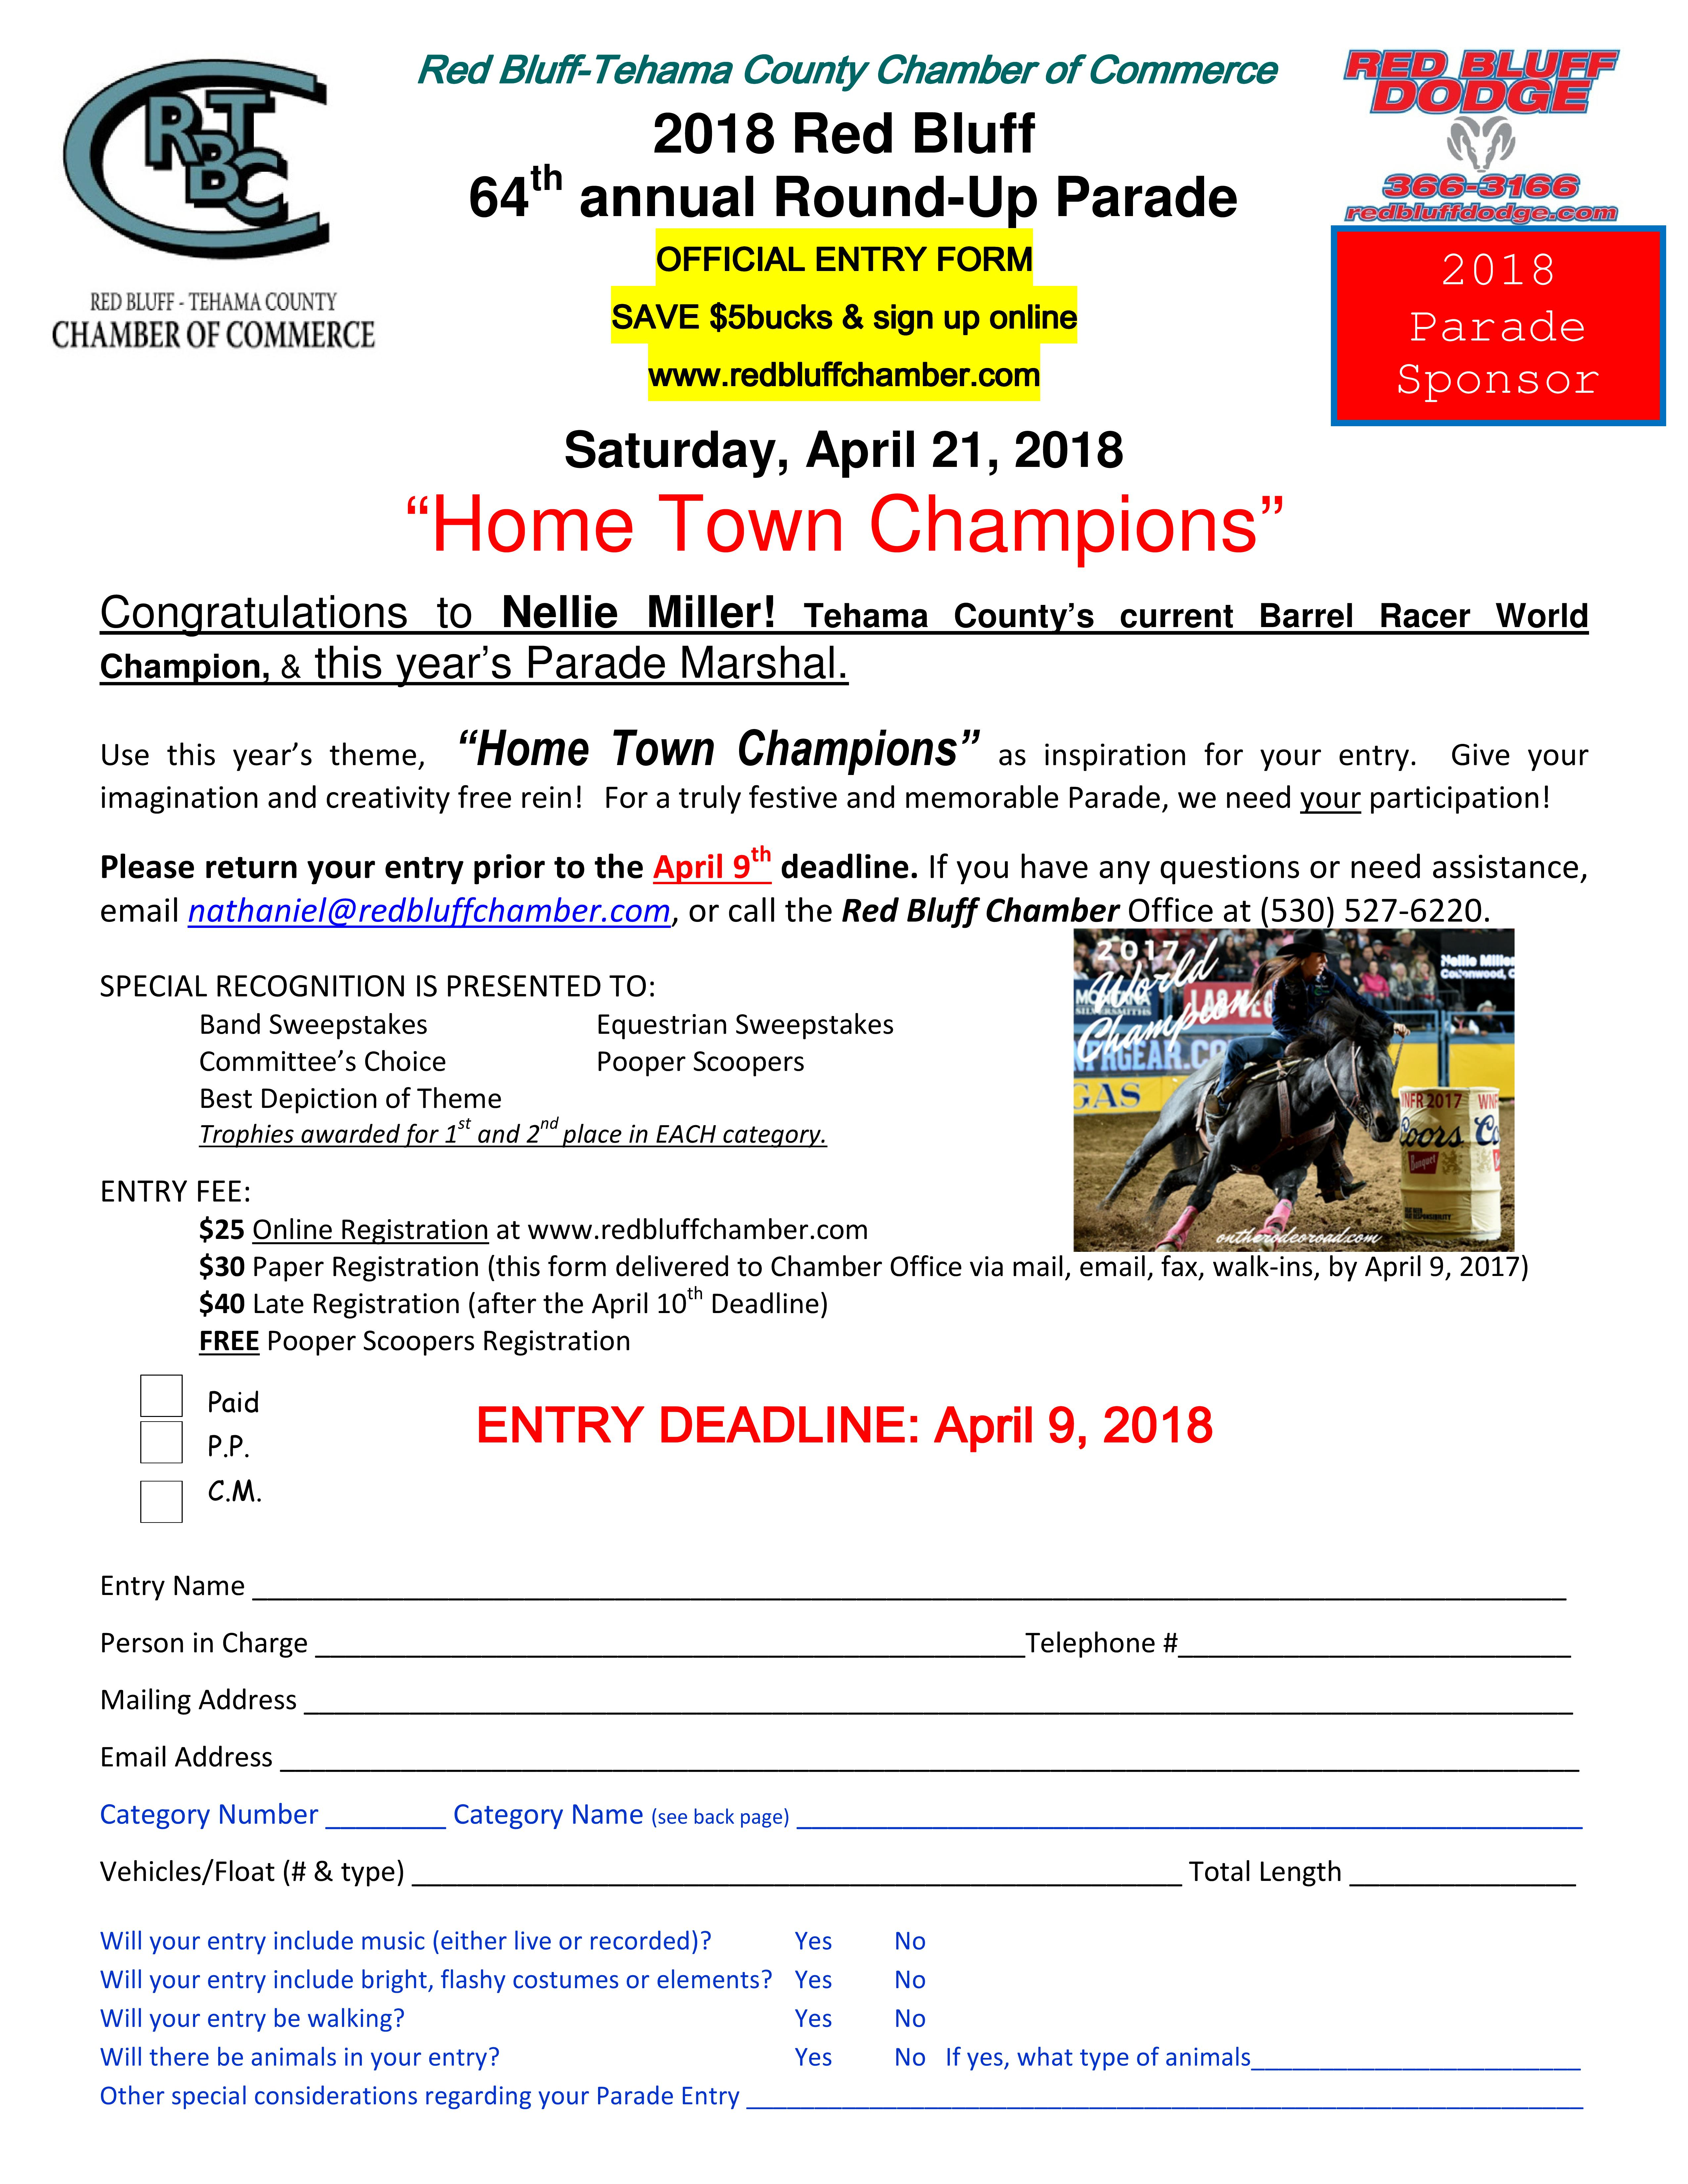 Parade 20entry 20form 202018 20 front